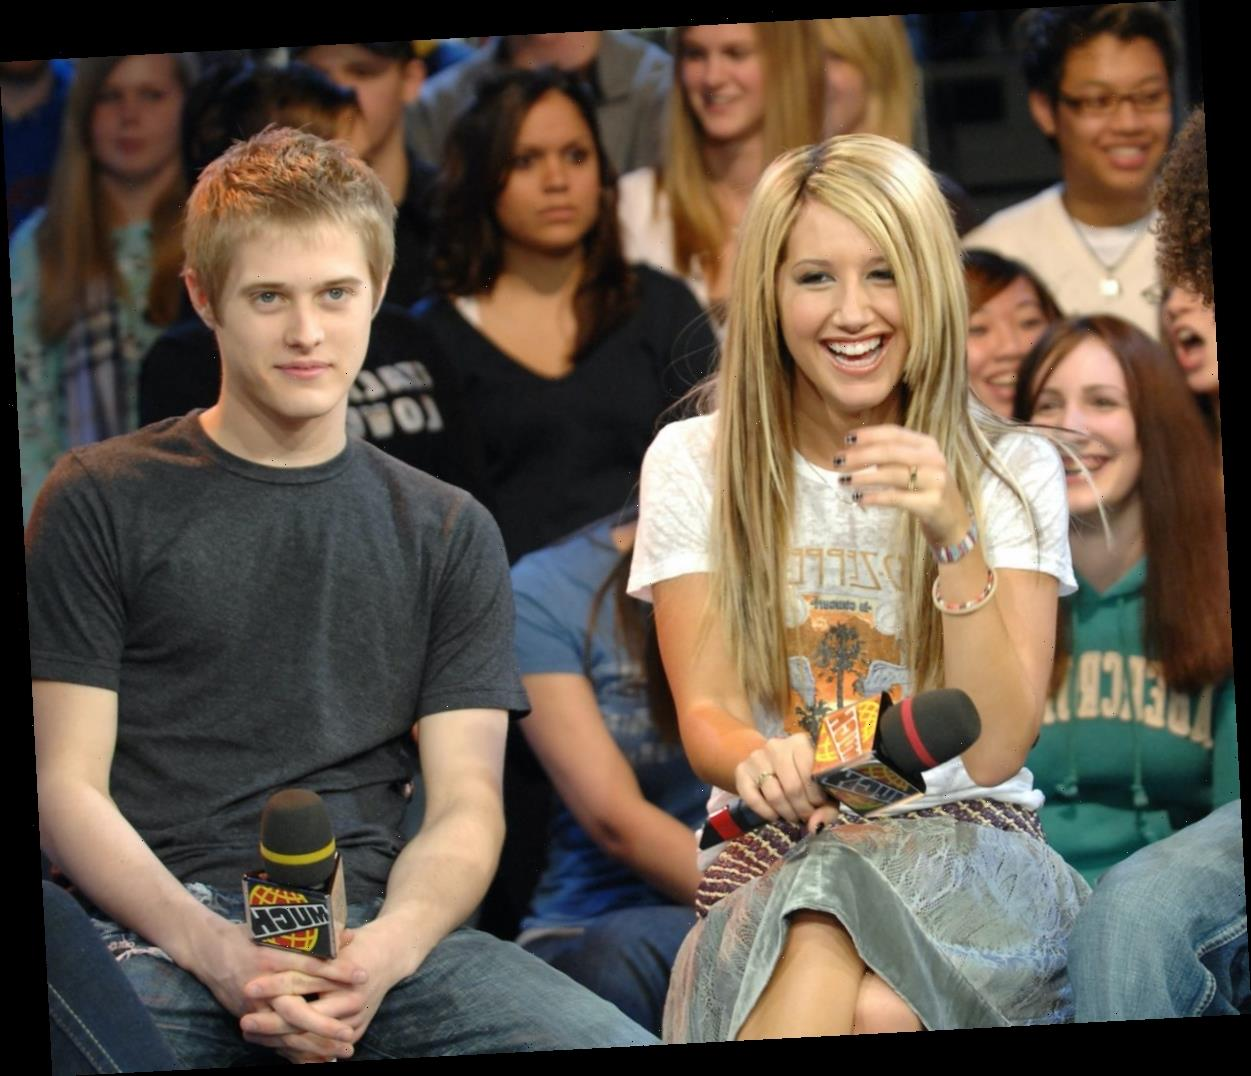 Ashley Tisdale and Lucas Grabeel 'Hated Each Other' During 'High School Musical'